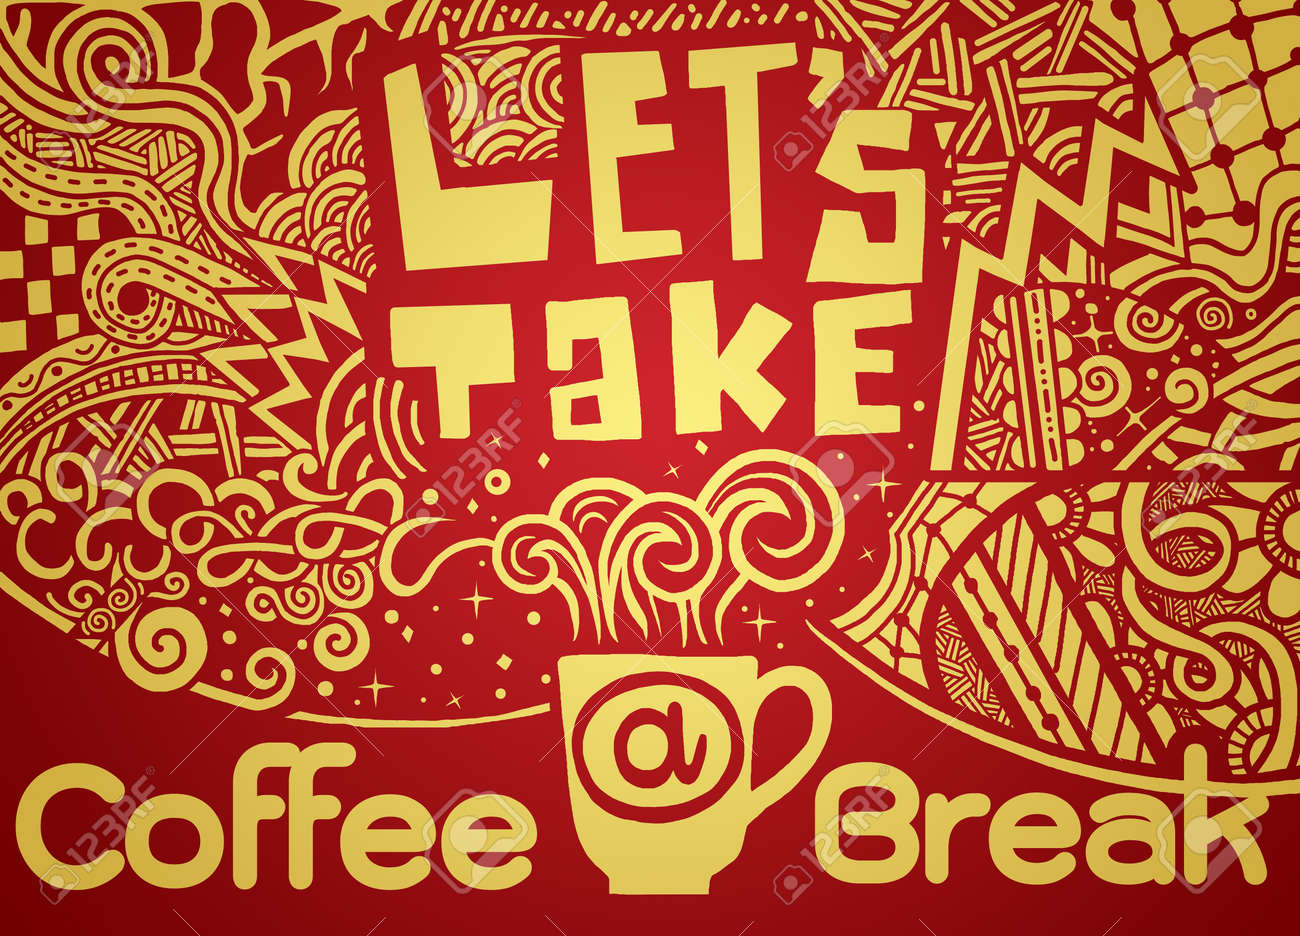 Take Break Coffeebreak : Lets take a coffee break lettering coffee quotes hand drawn